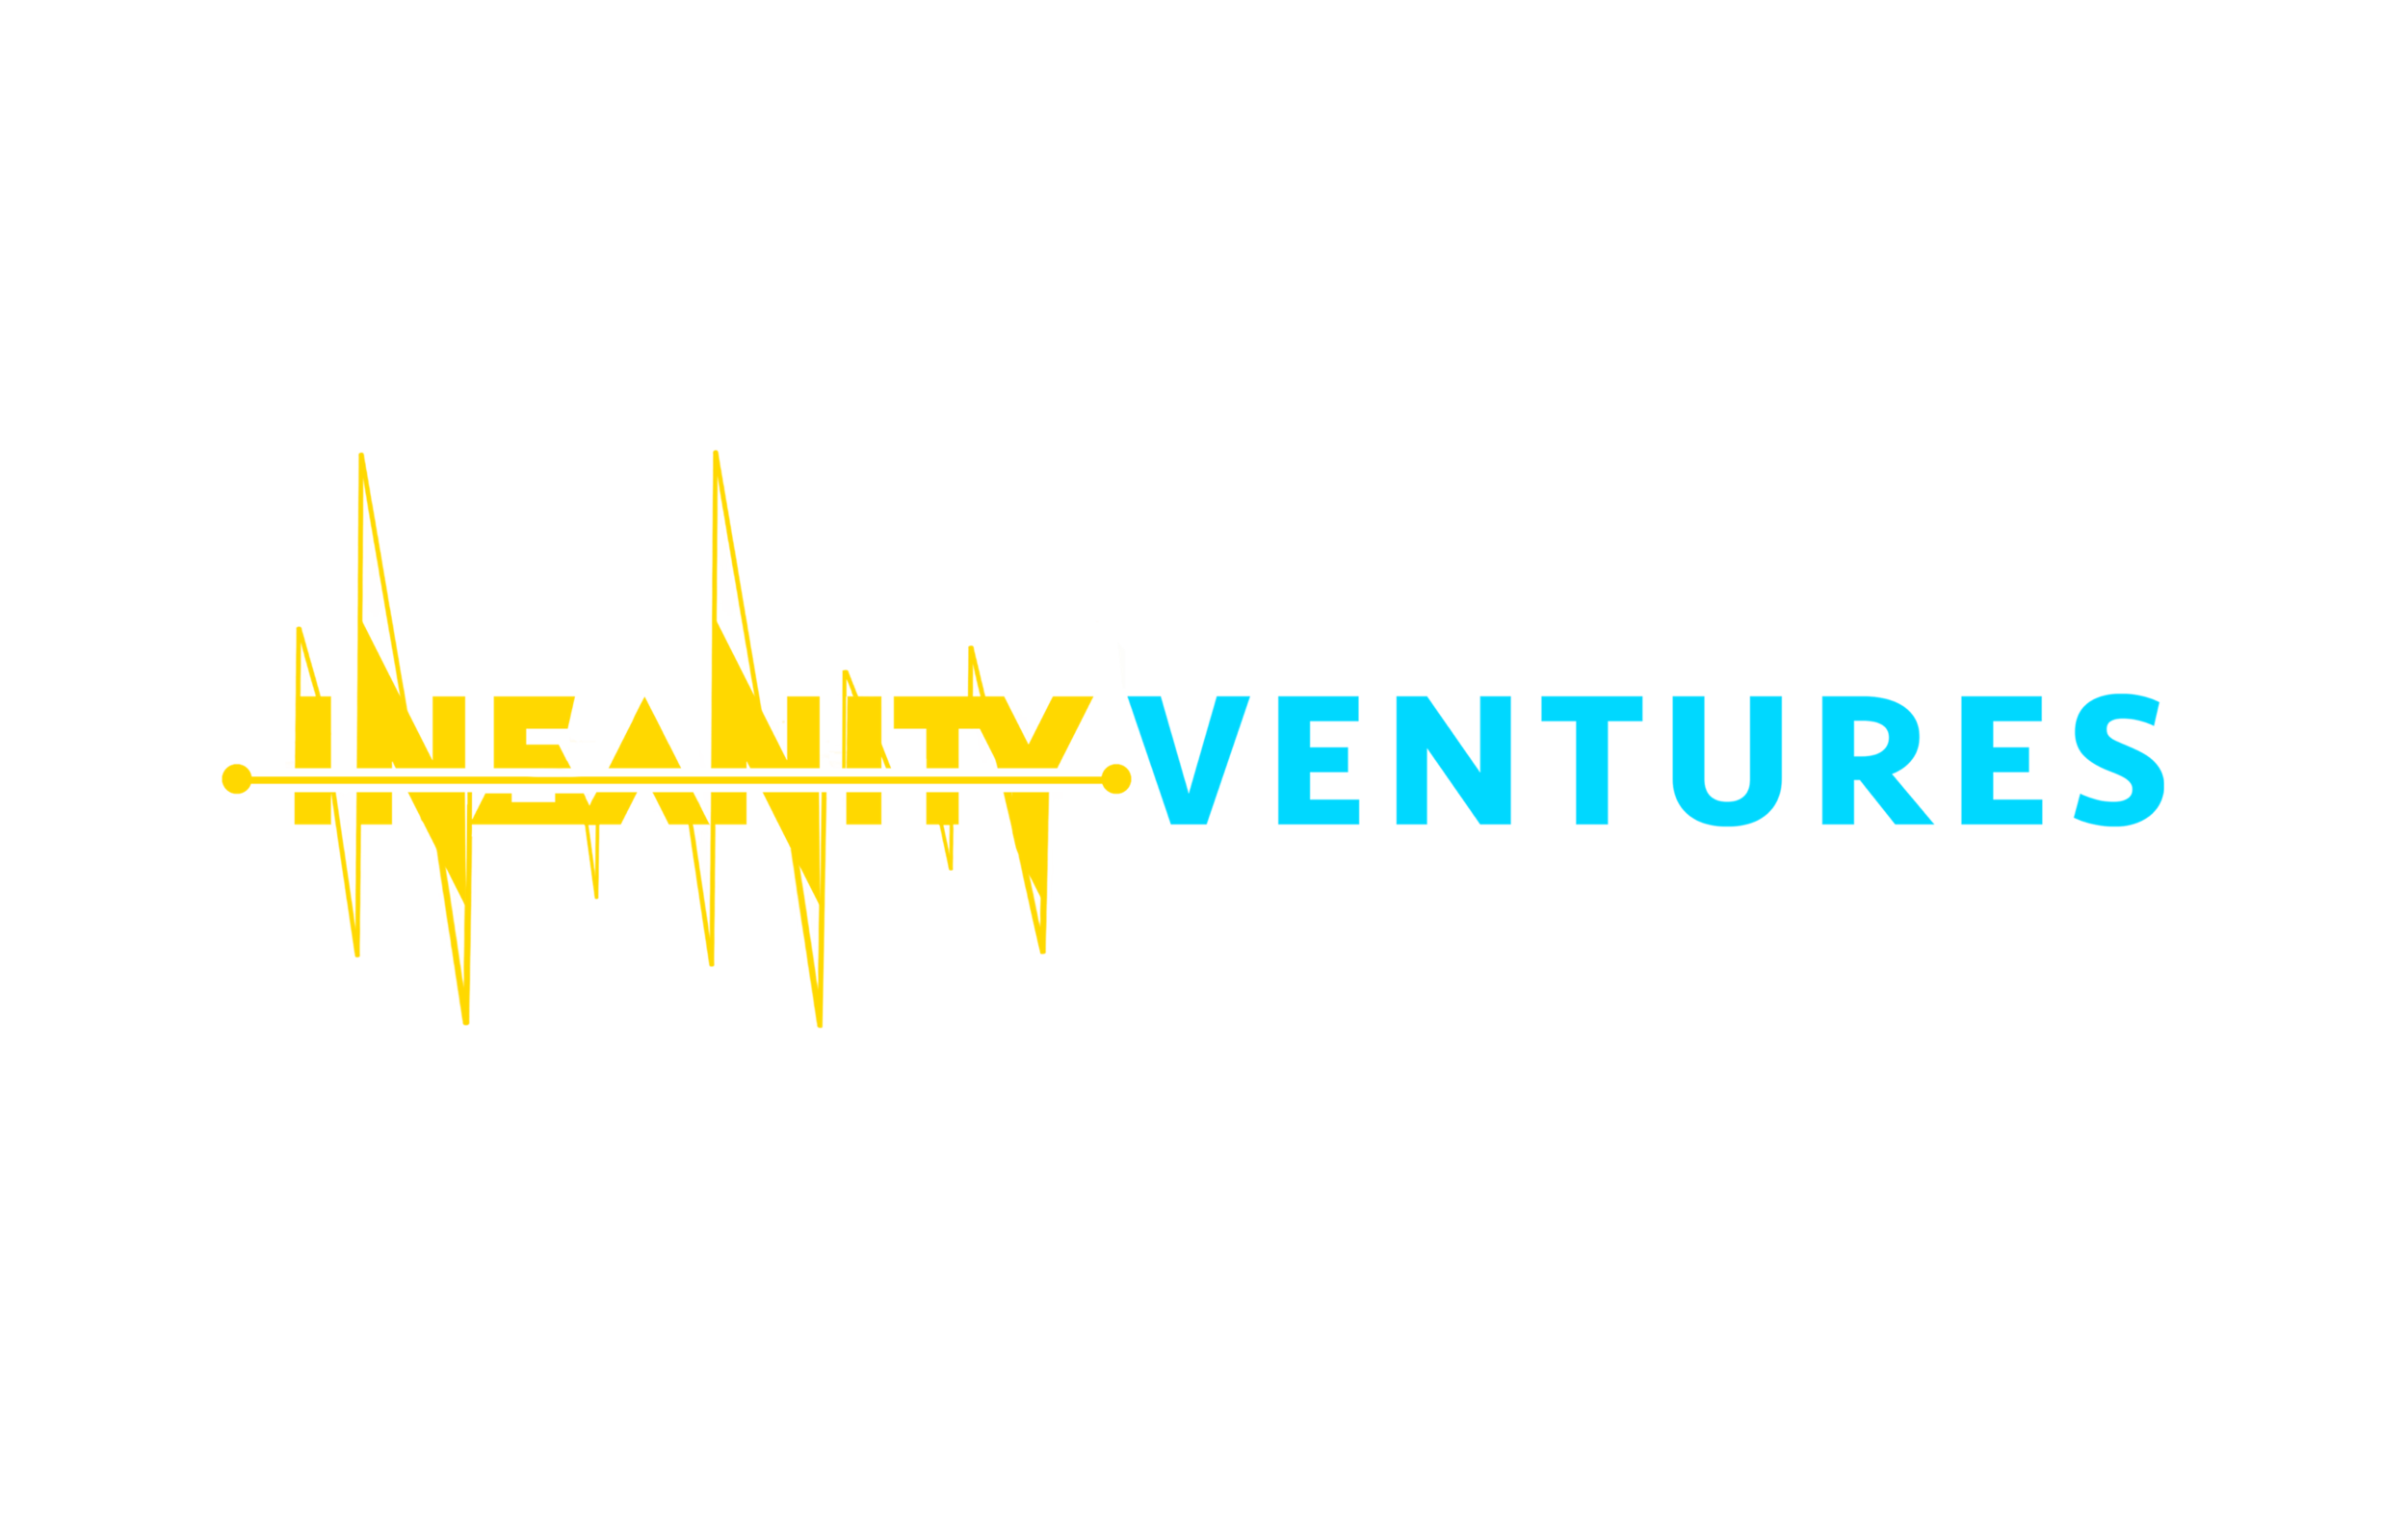 insanity ventures logo.PNG